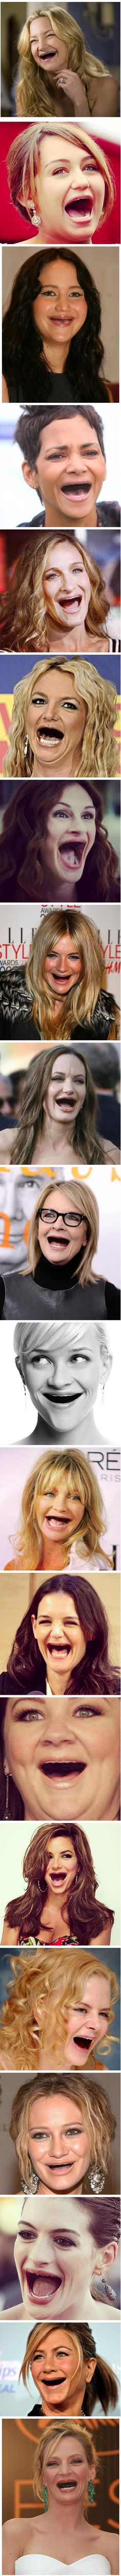 Celebrities without teeth. You're welcome.